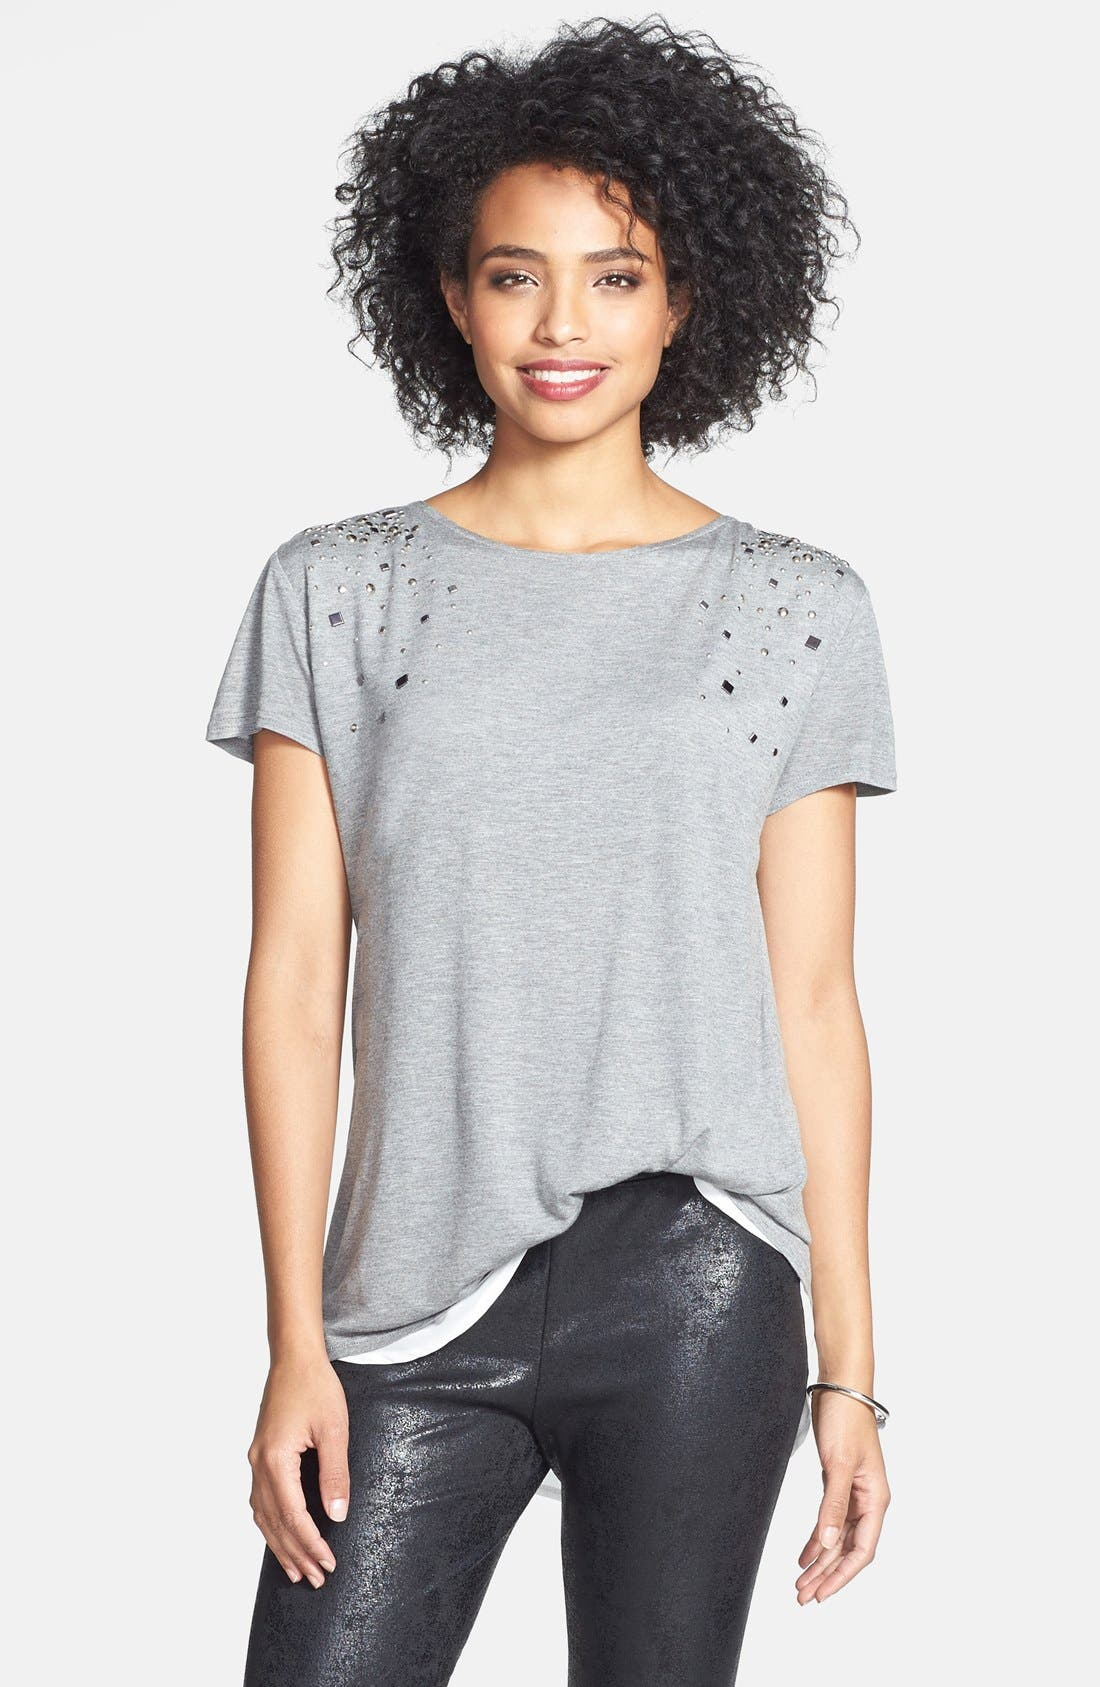 Alternate Image 1 Selected - Two by Vince Camuto Embellished Jersey & Chiffon Tee